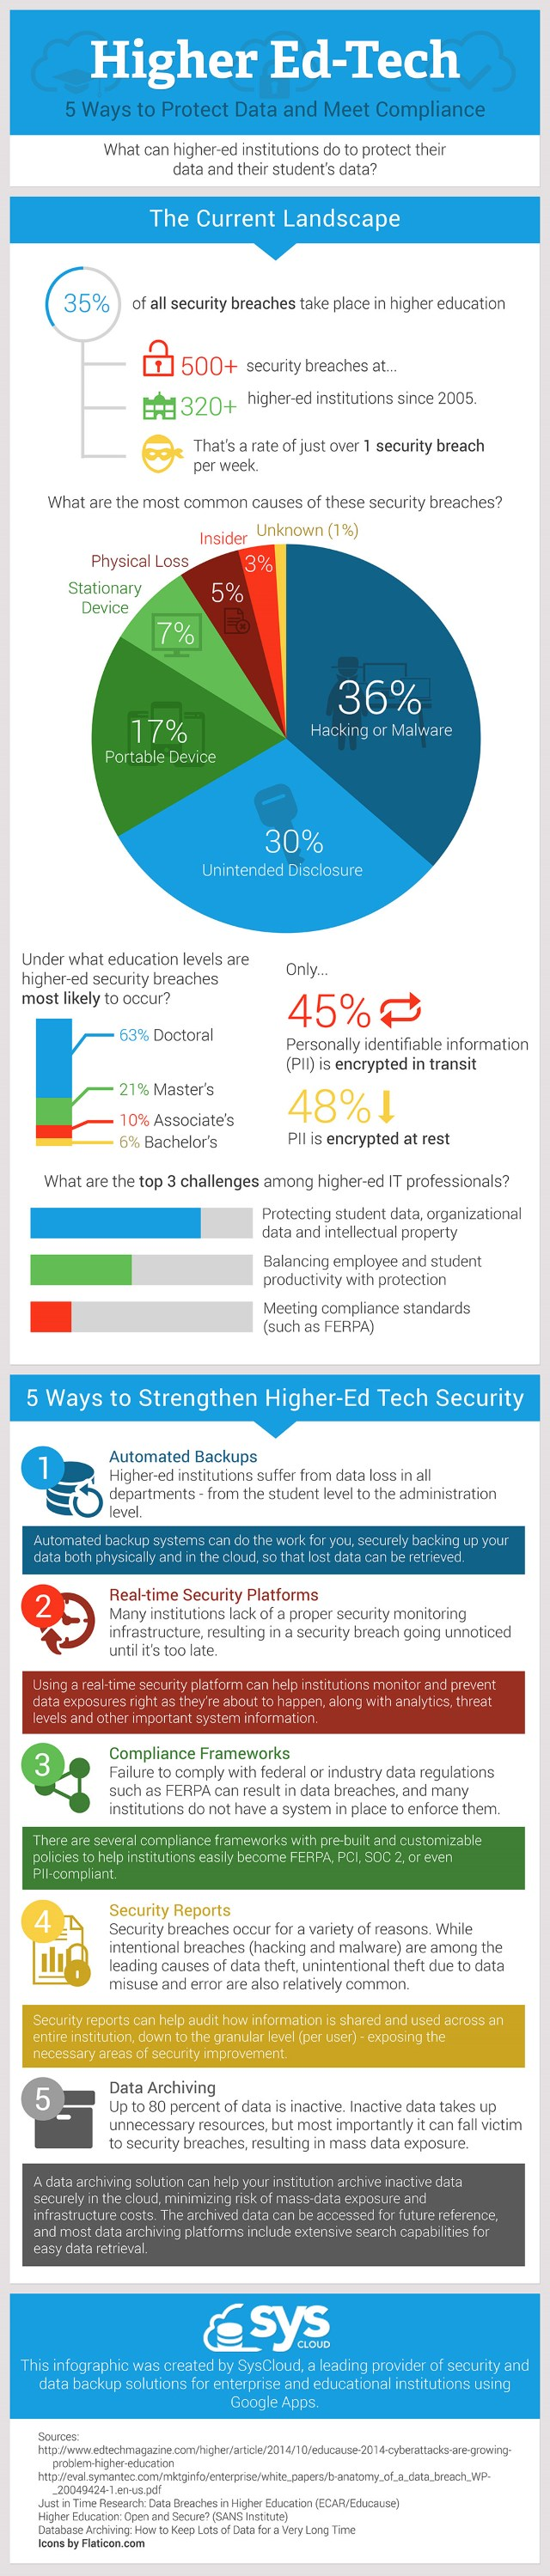 Higher-Ed-Protect-Data-v1_s